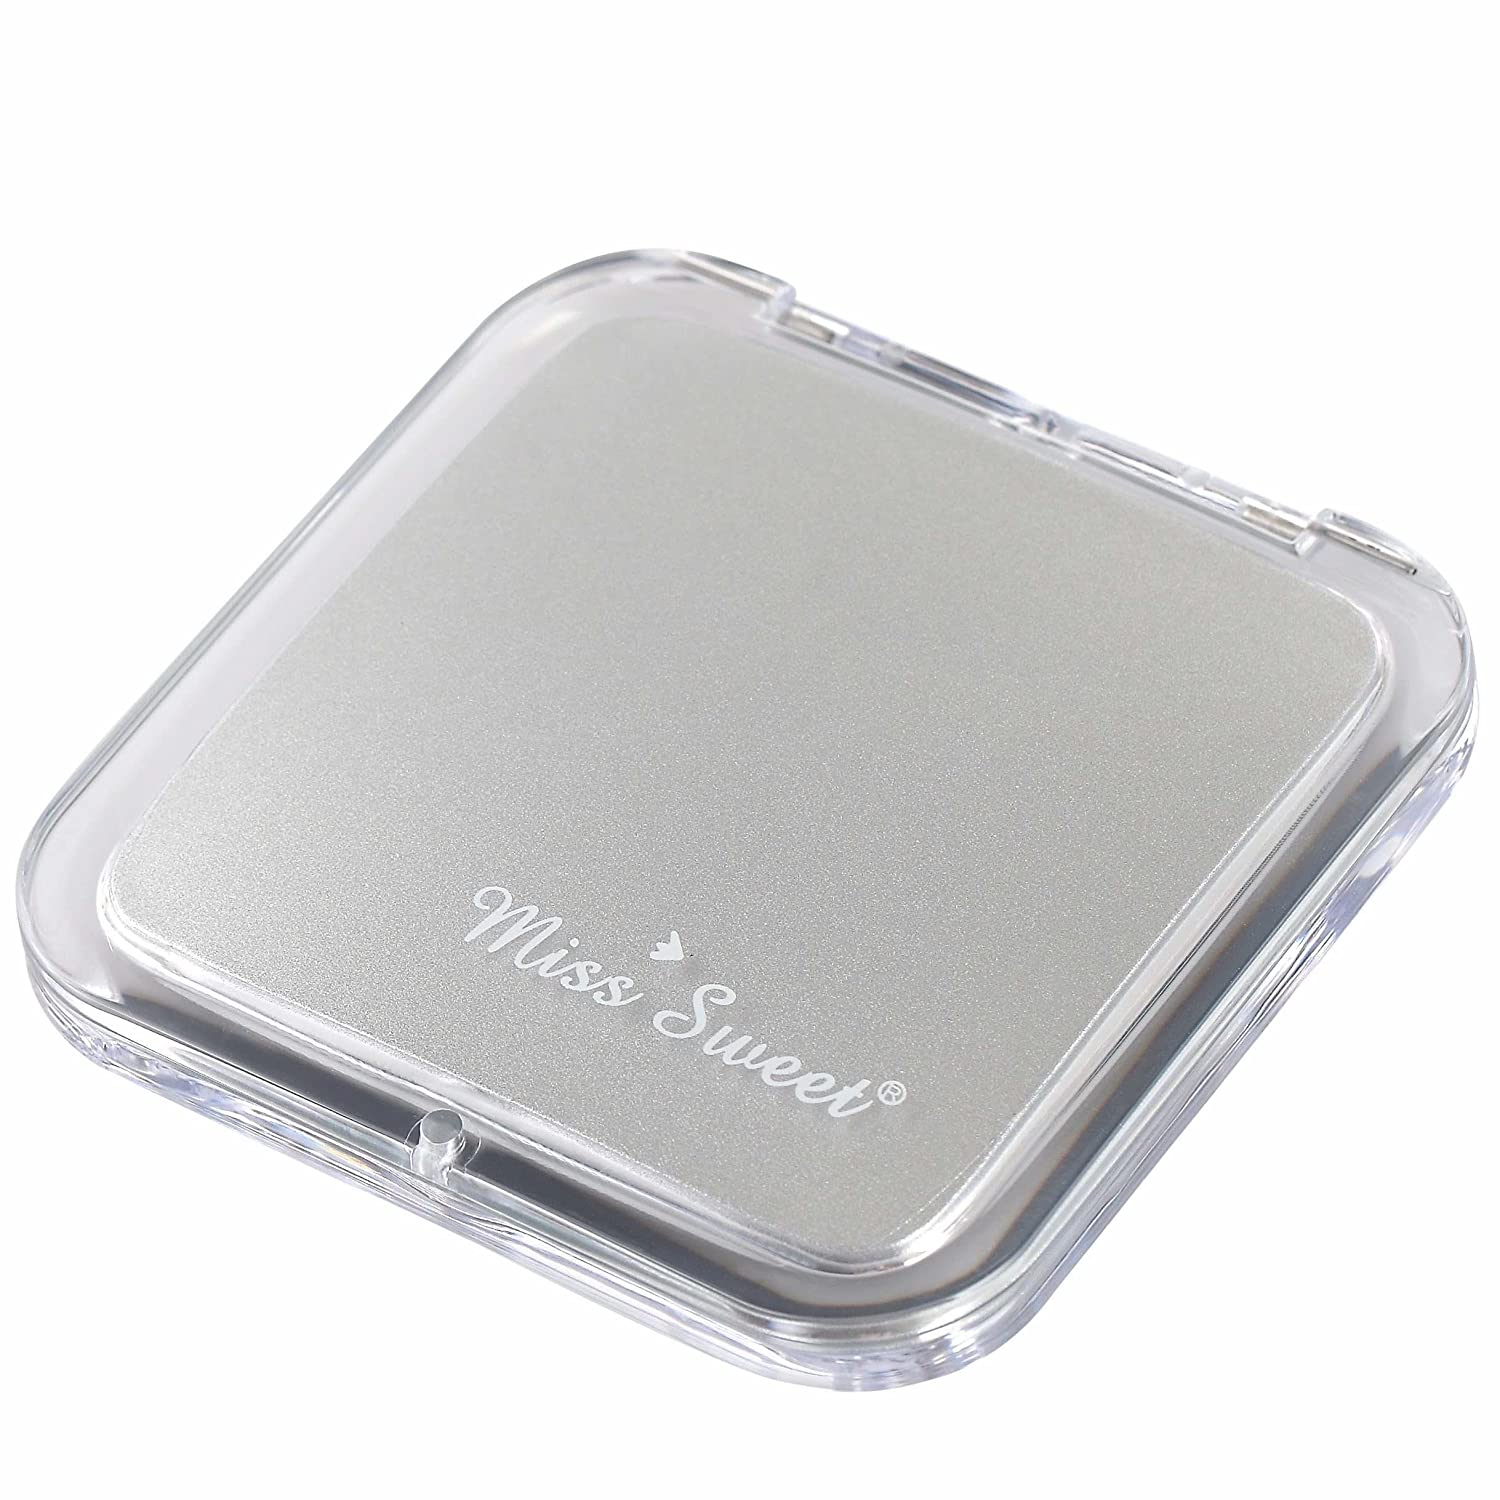 Miss Sweet Compact Mirror for Purse Pocket Mirror True image& 10X magnification (Black)